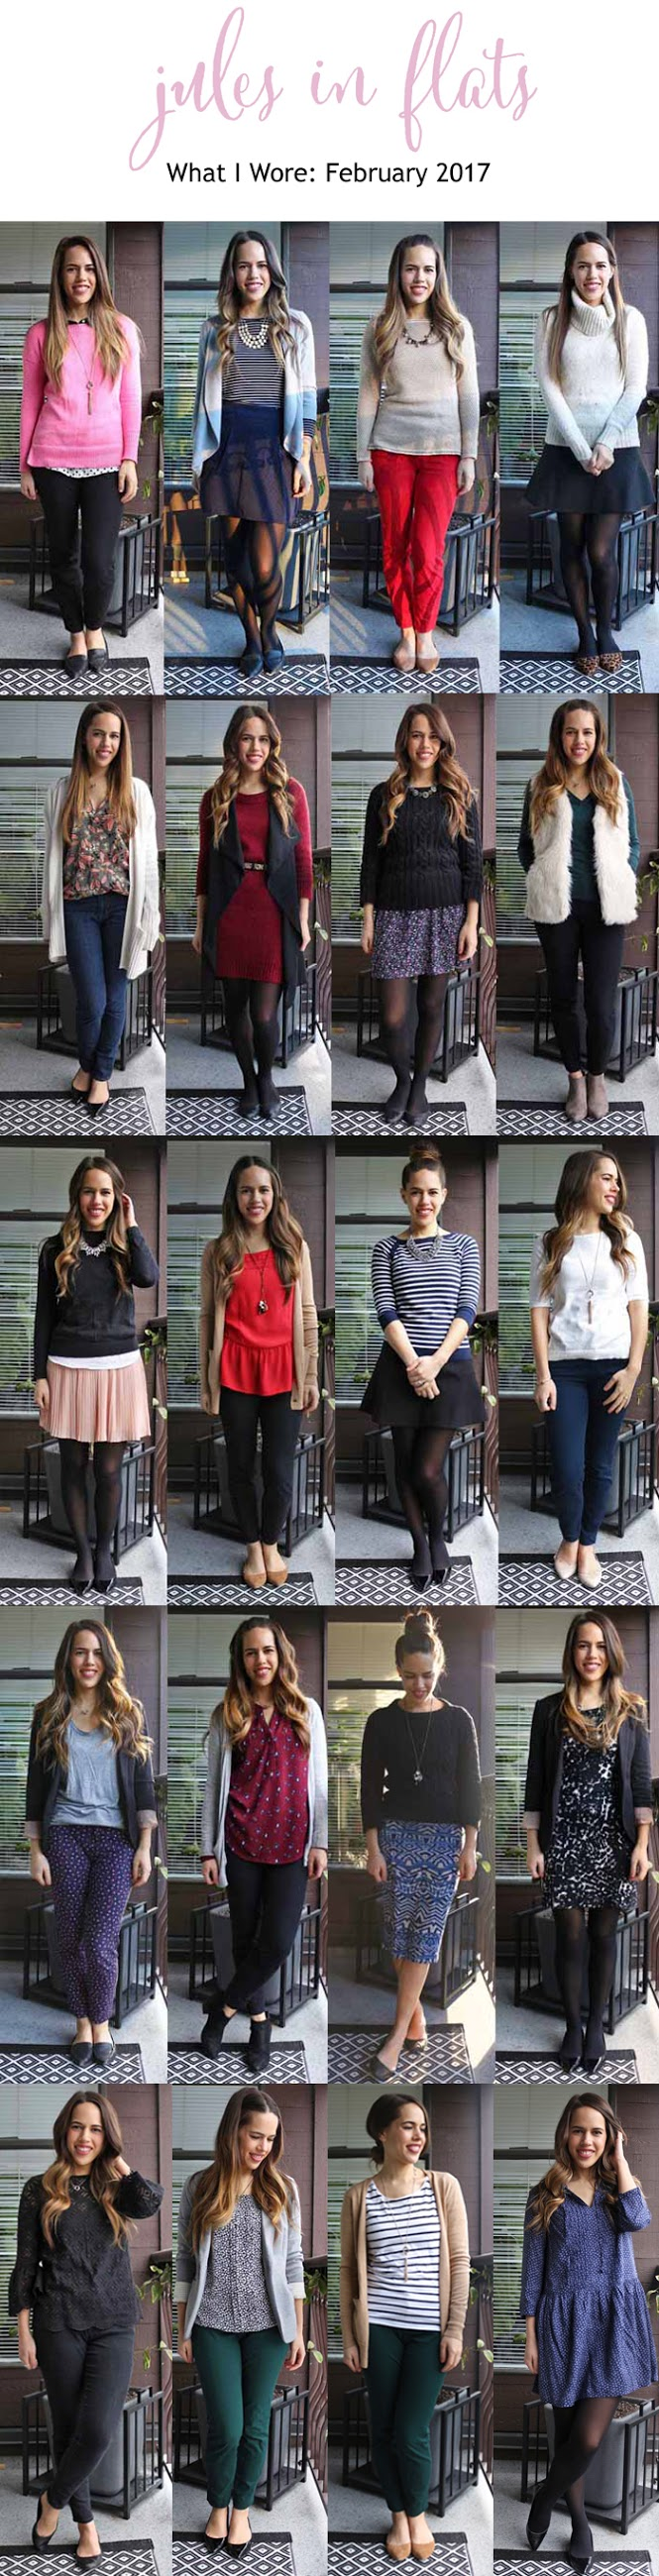 Jules in Flats – Monthly Outfit Roundup February 2017